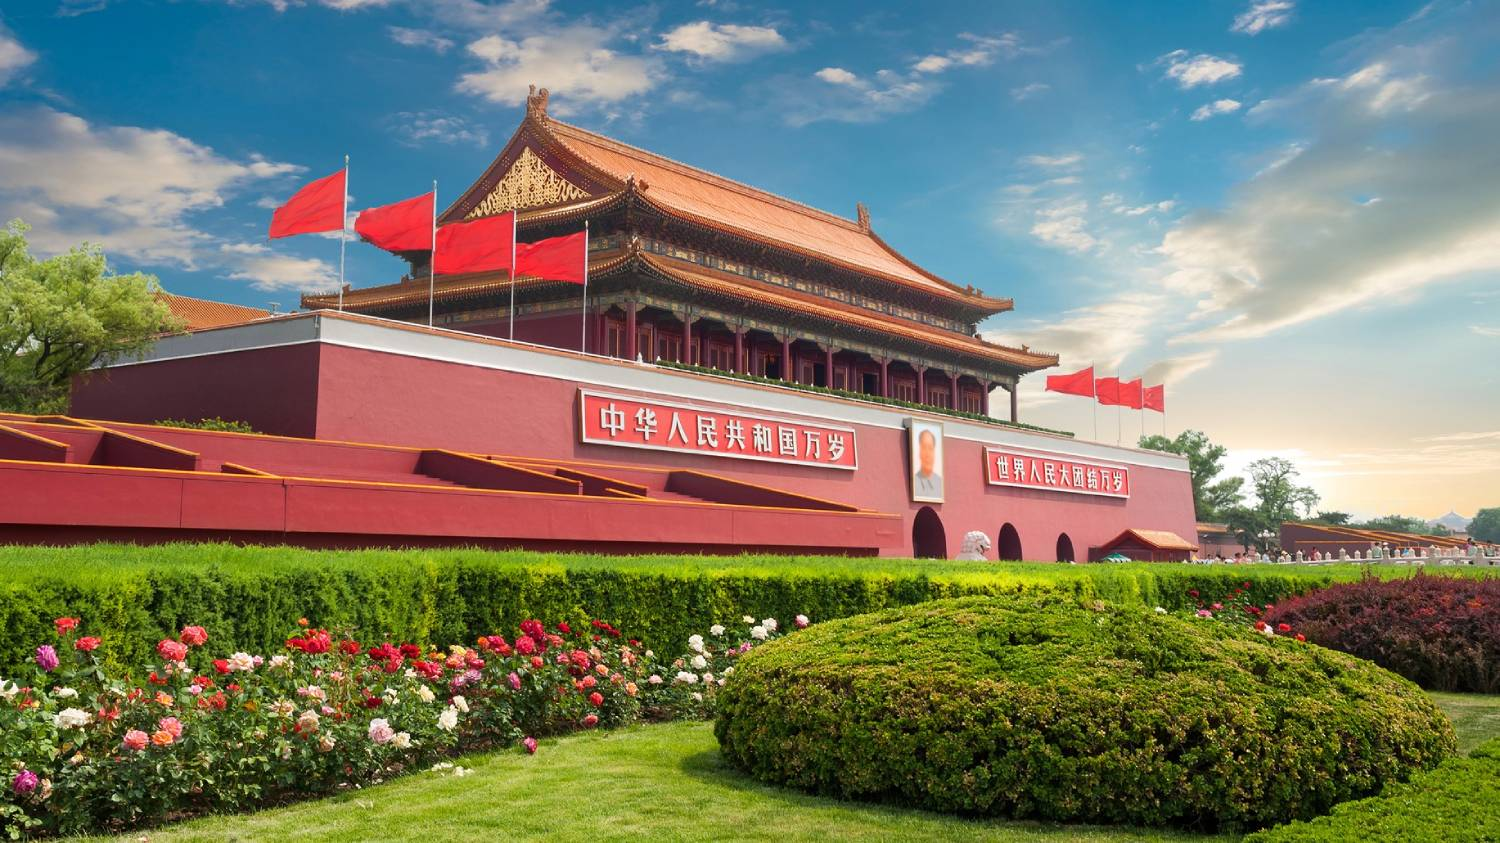 Tiananmen Square - Things To Do In Beijing